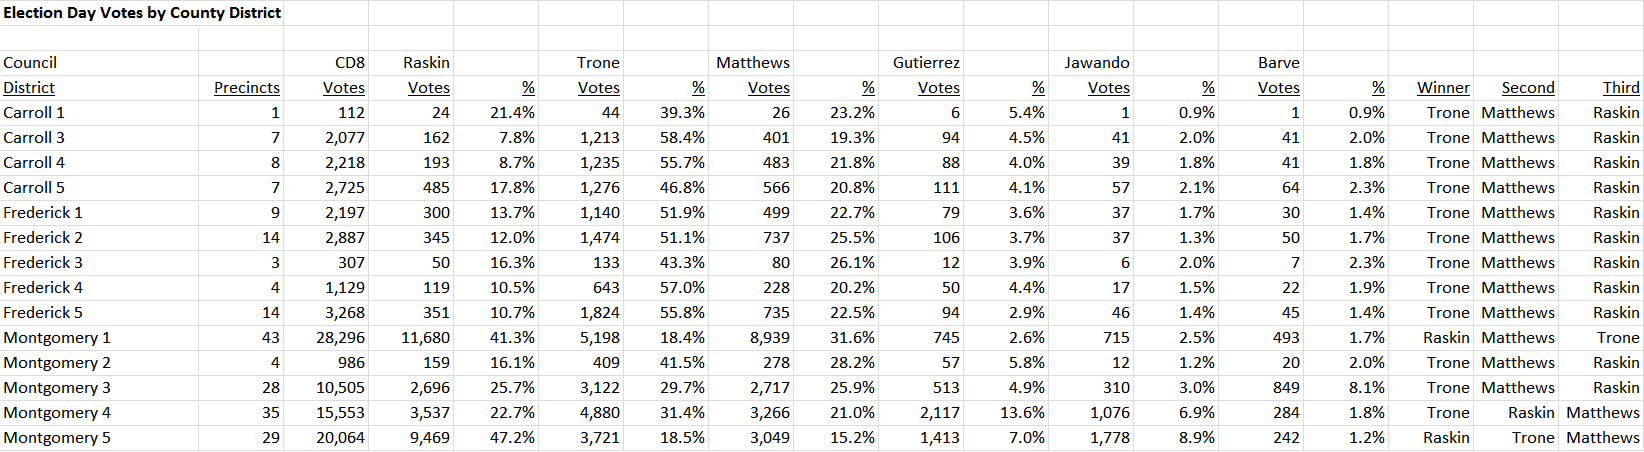 CD8 Votes by County Districts 2